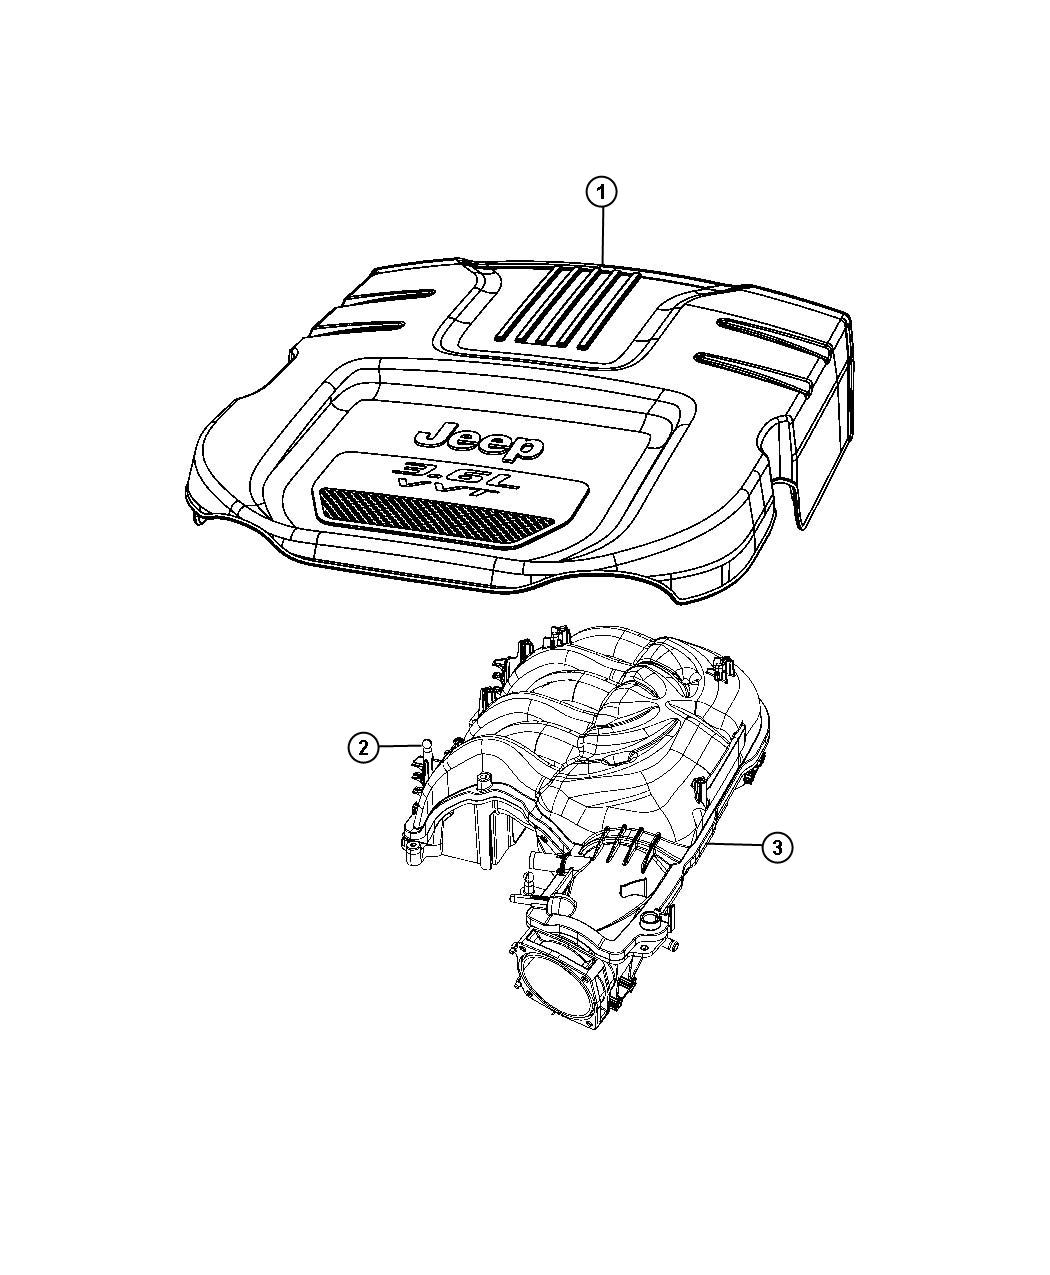 Gm 3 6 Vvt Engine Problems Gm Free Engine Image For User Manual Download